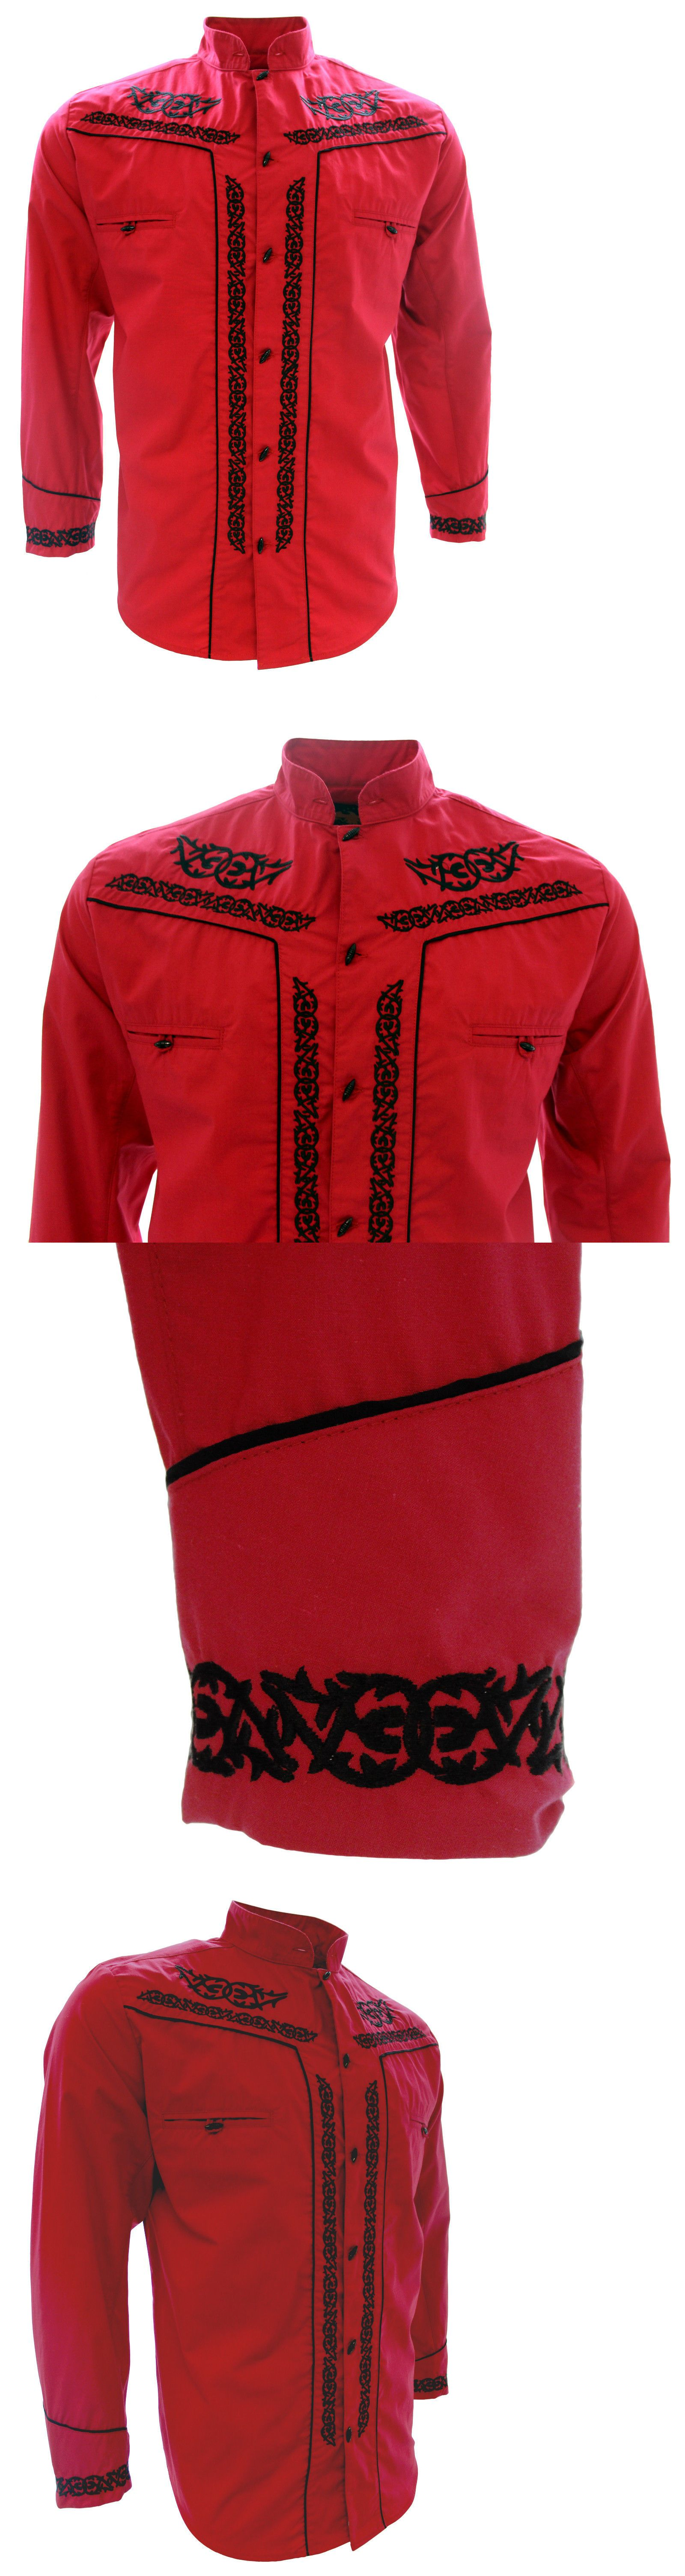 Latin America 155252  Men S Charro Shirt Camisa Charra El General Western  Wear Red Long Sleeve -  BUY IT NOW ONLY   34.99 on  eBay  latin  america   charro ... 2d33c63b2